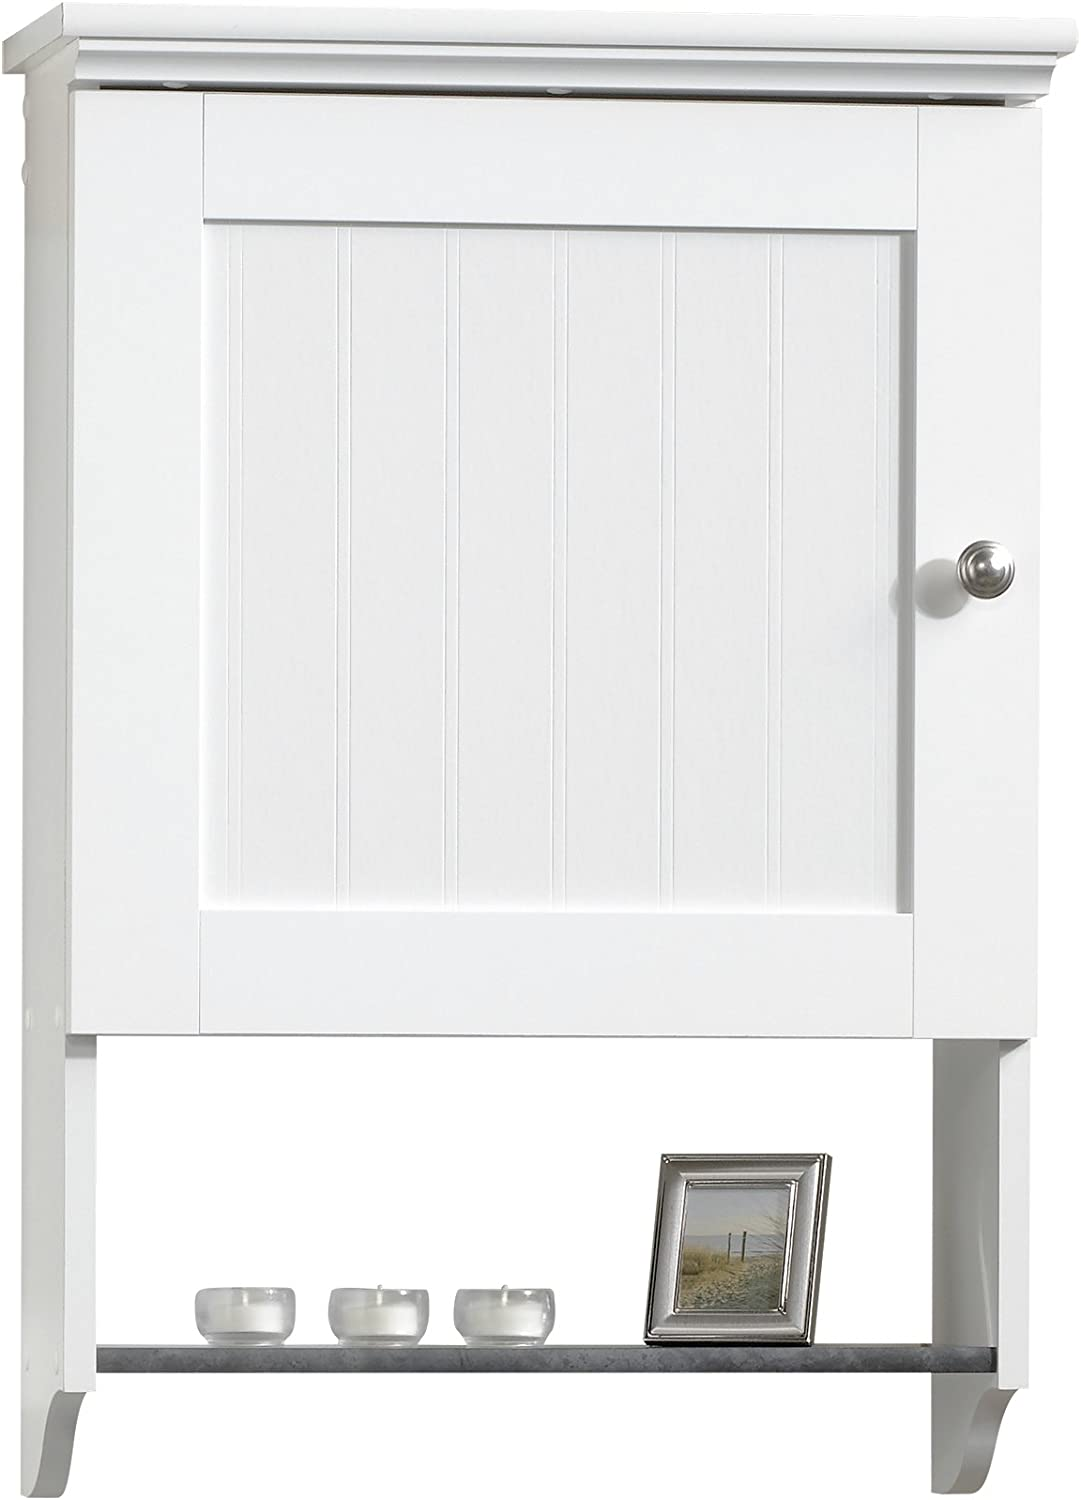 Sauder 414061 Caraway Wall Cabinet, L  19.92  x W  7.48  x H  28.74 , Soft White finish